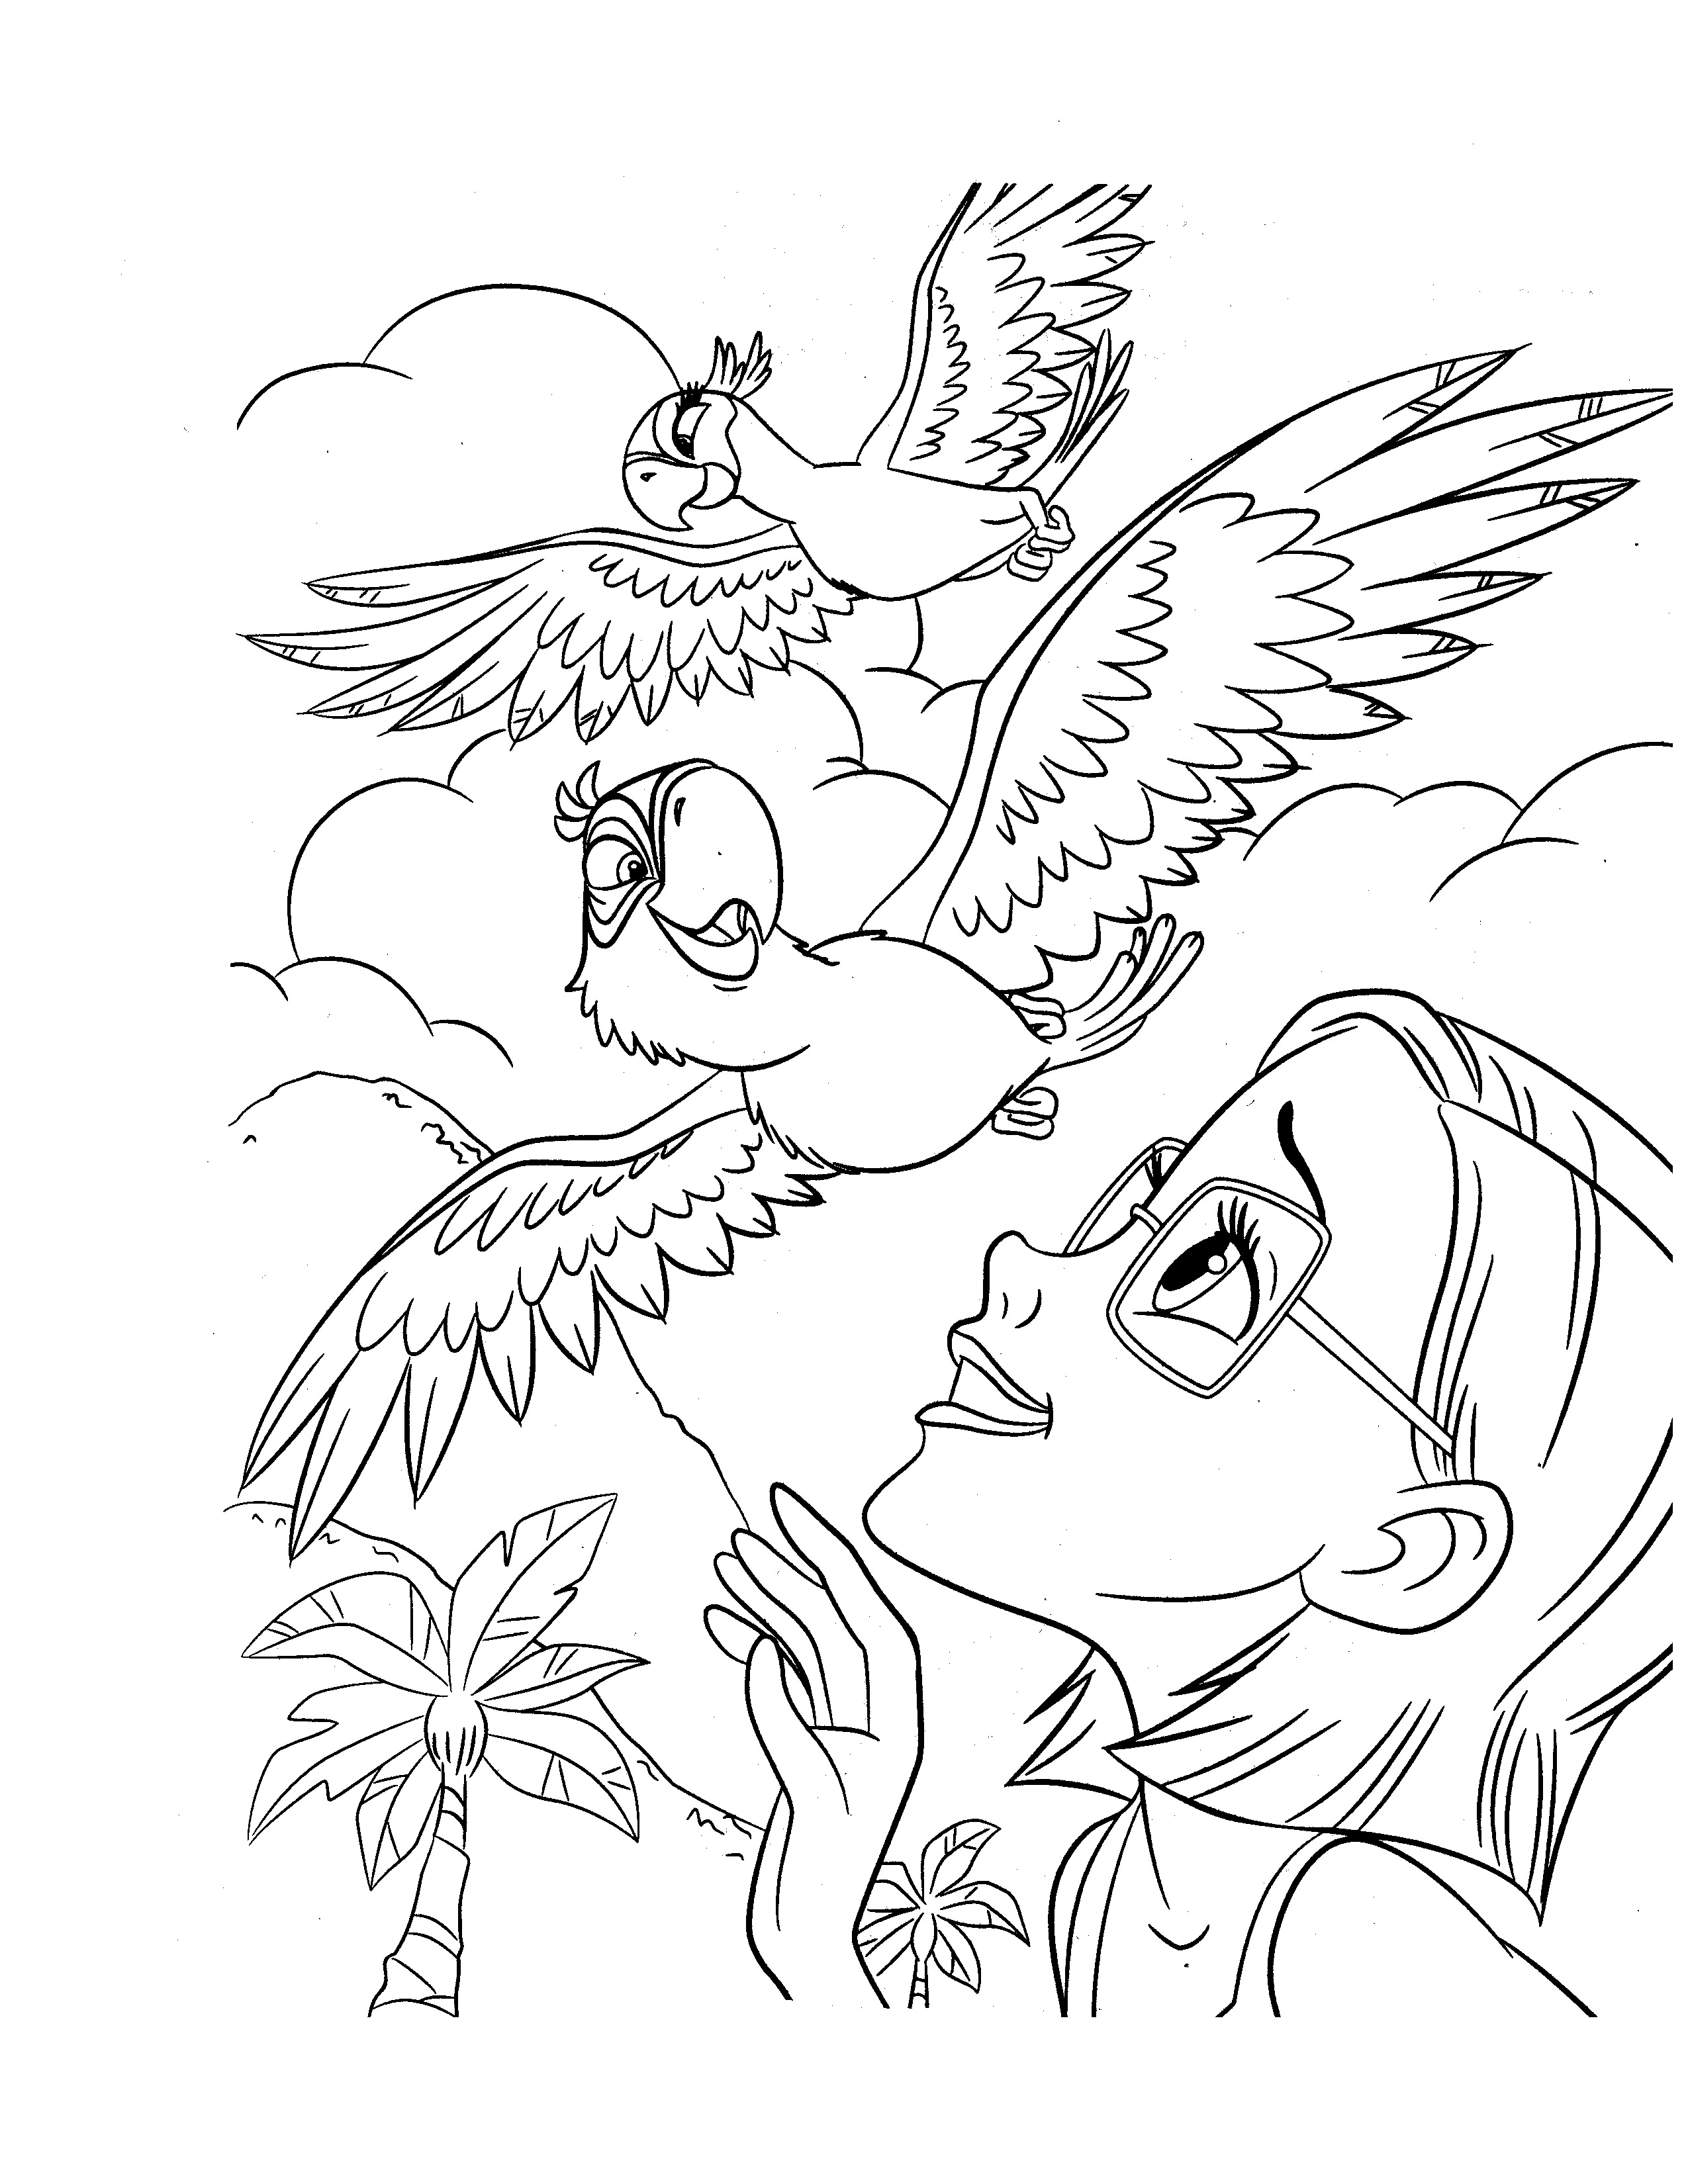 Free Rio coloring page to download, for children